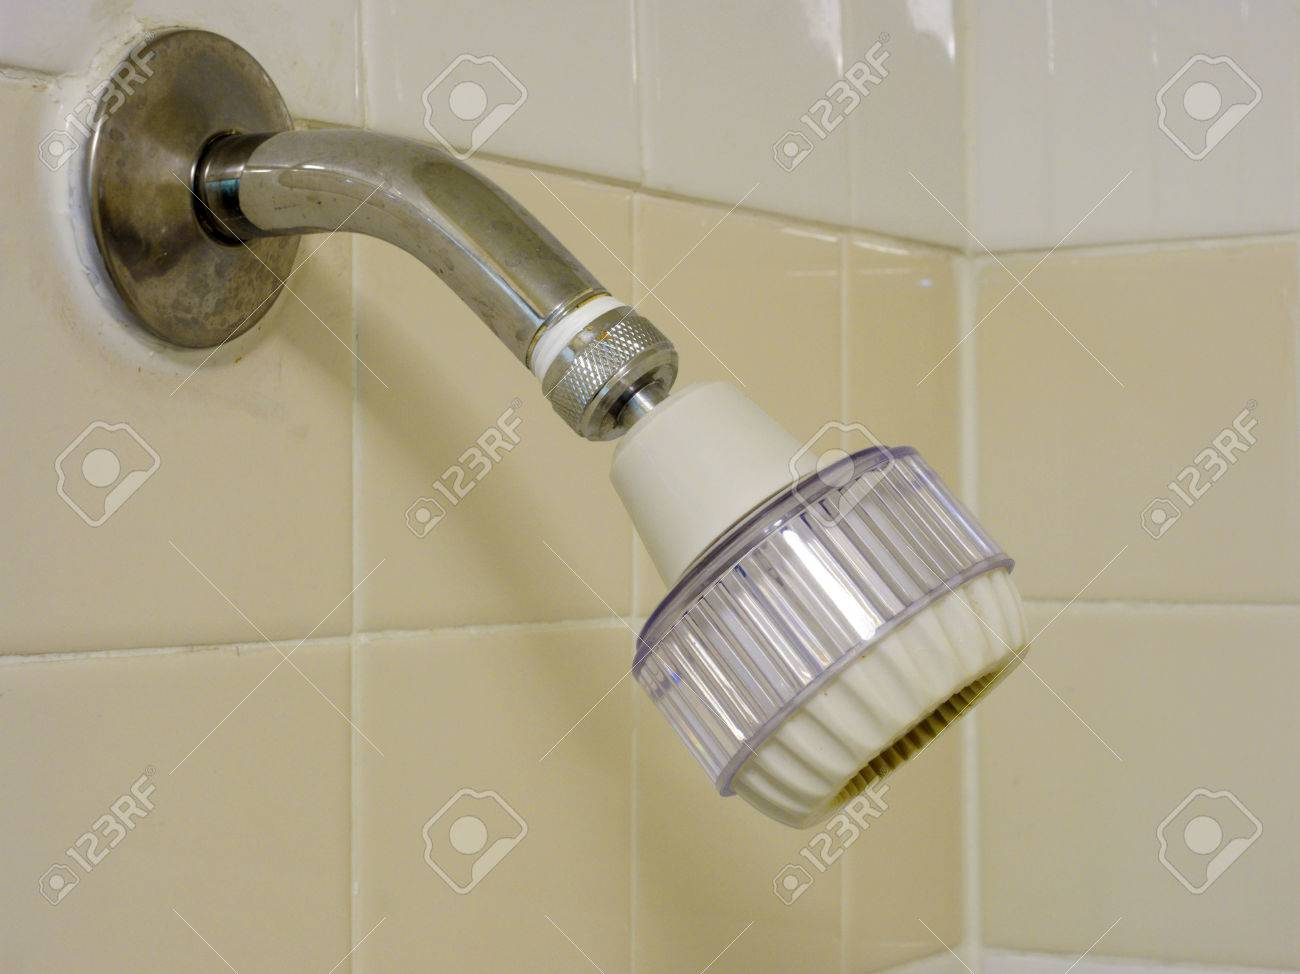 Adjustable Water Saving Low Flow Shower Head Mounted On The Wall